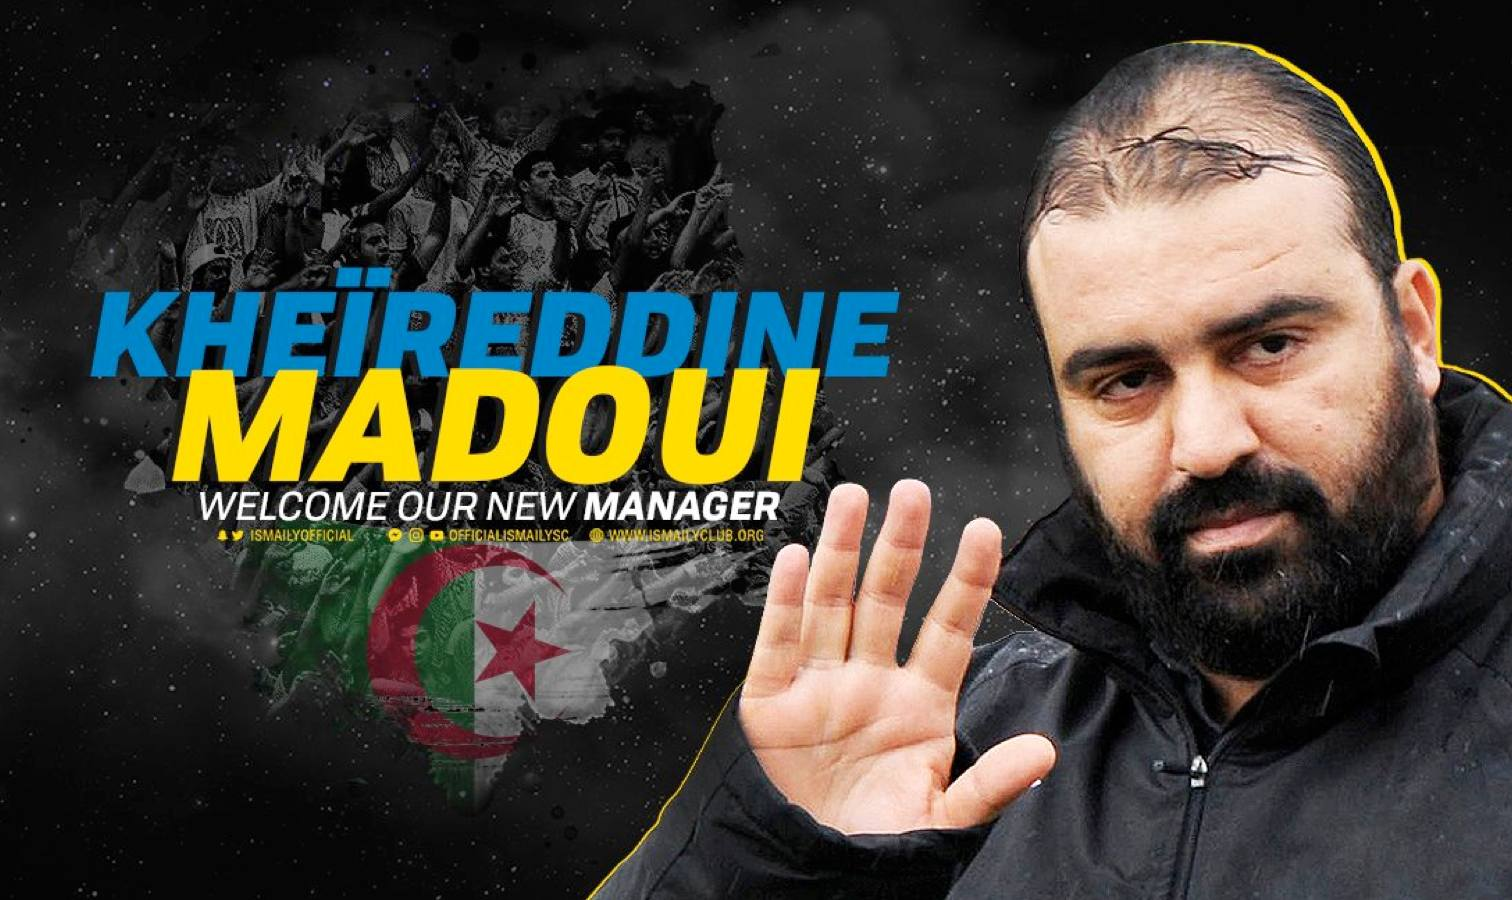 madoui coach ismaily